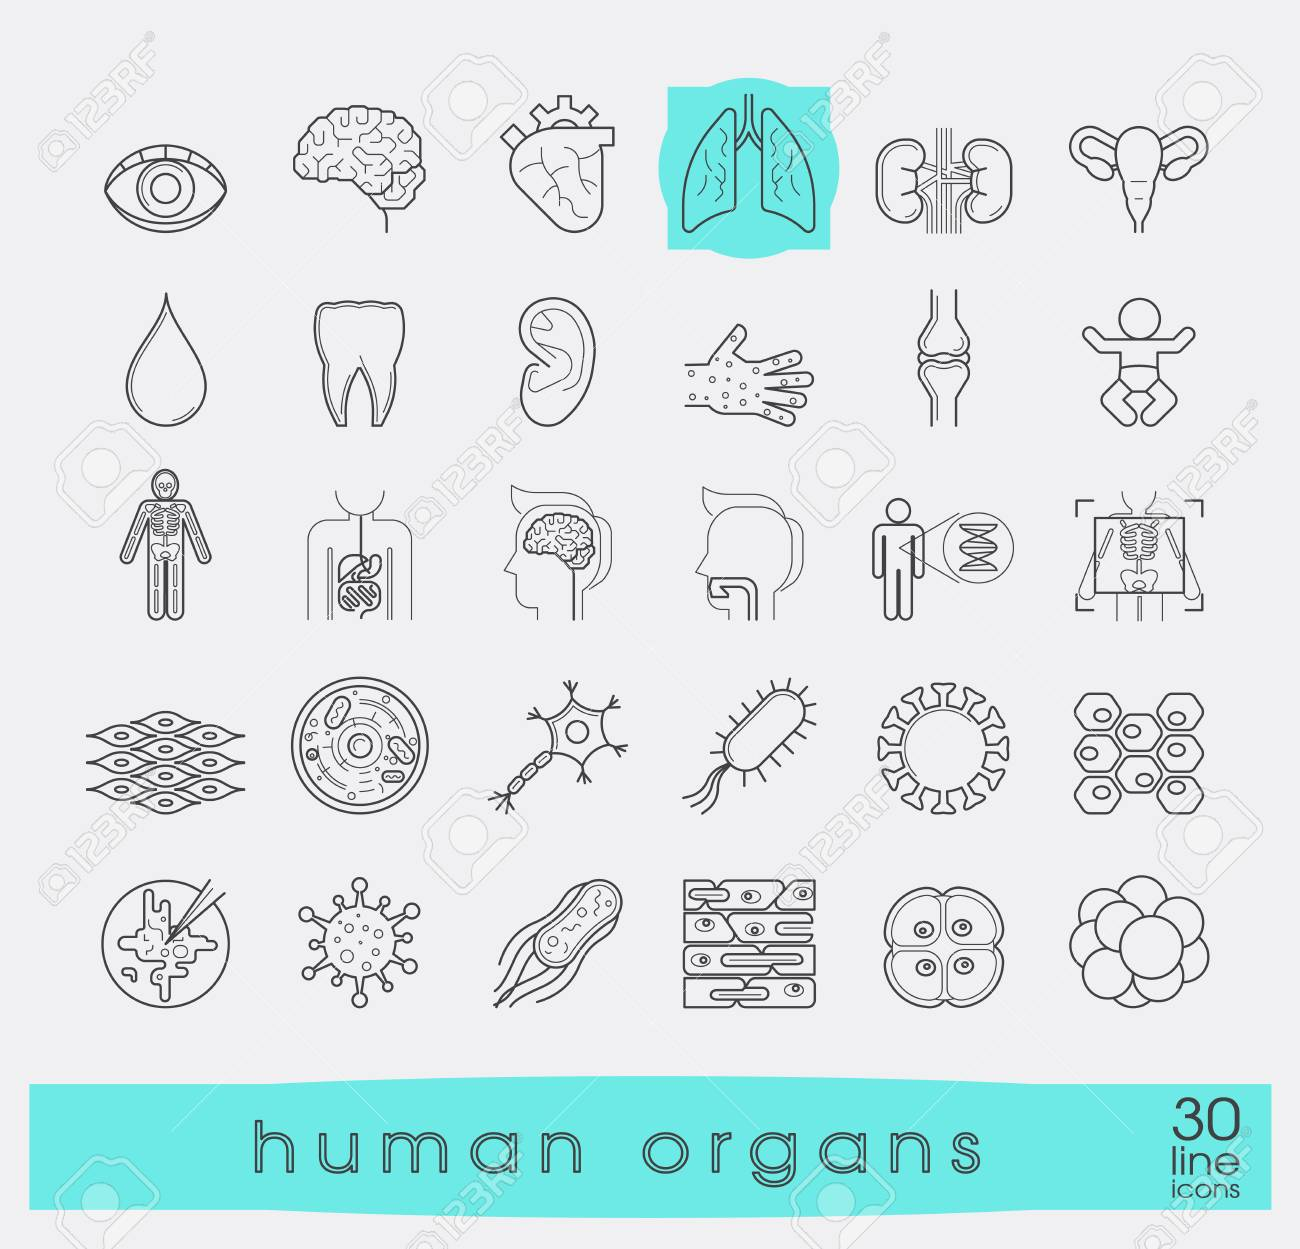 Icons presenting various organs of the human body. Set of premium quality line icons. Collection of anatomy icons. Medical and science. Vector illustration. Stock Vector - 63913909